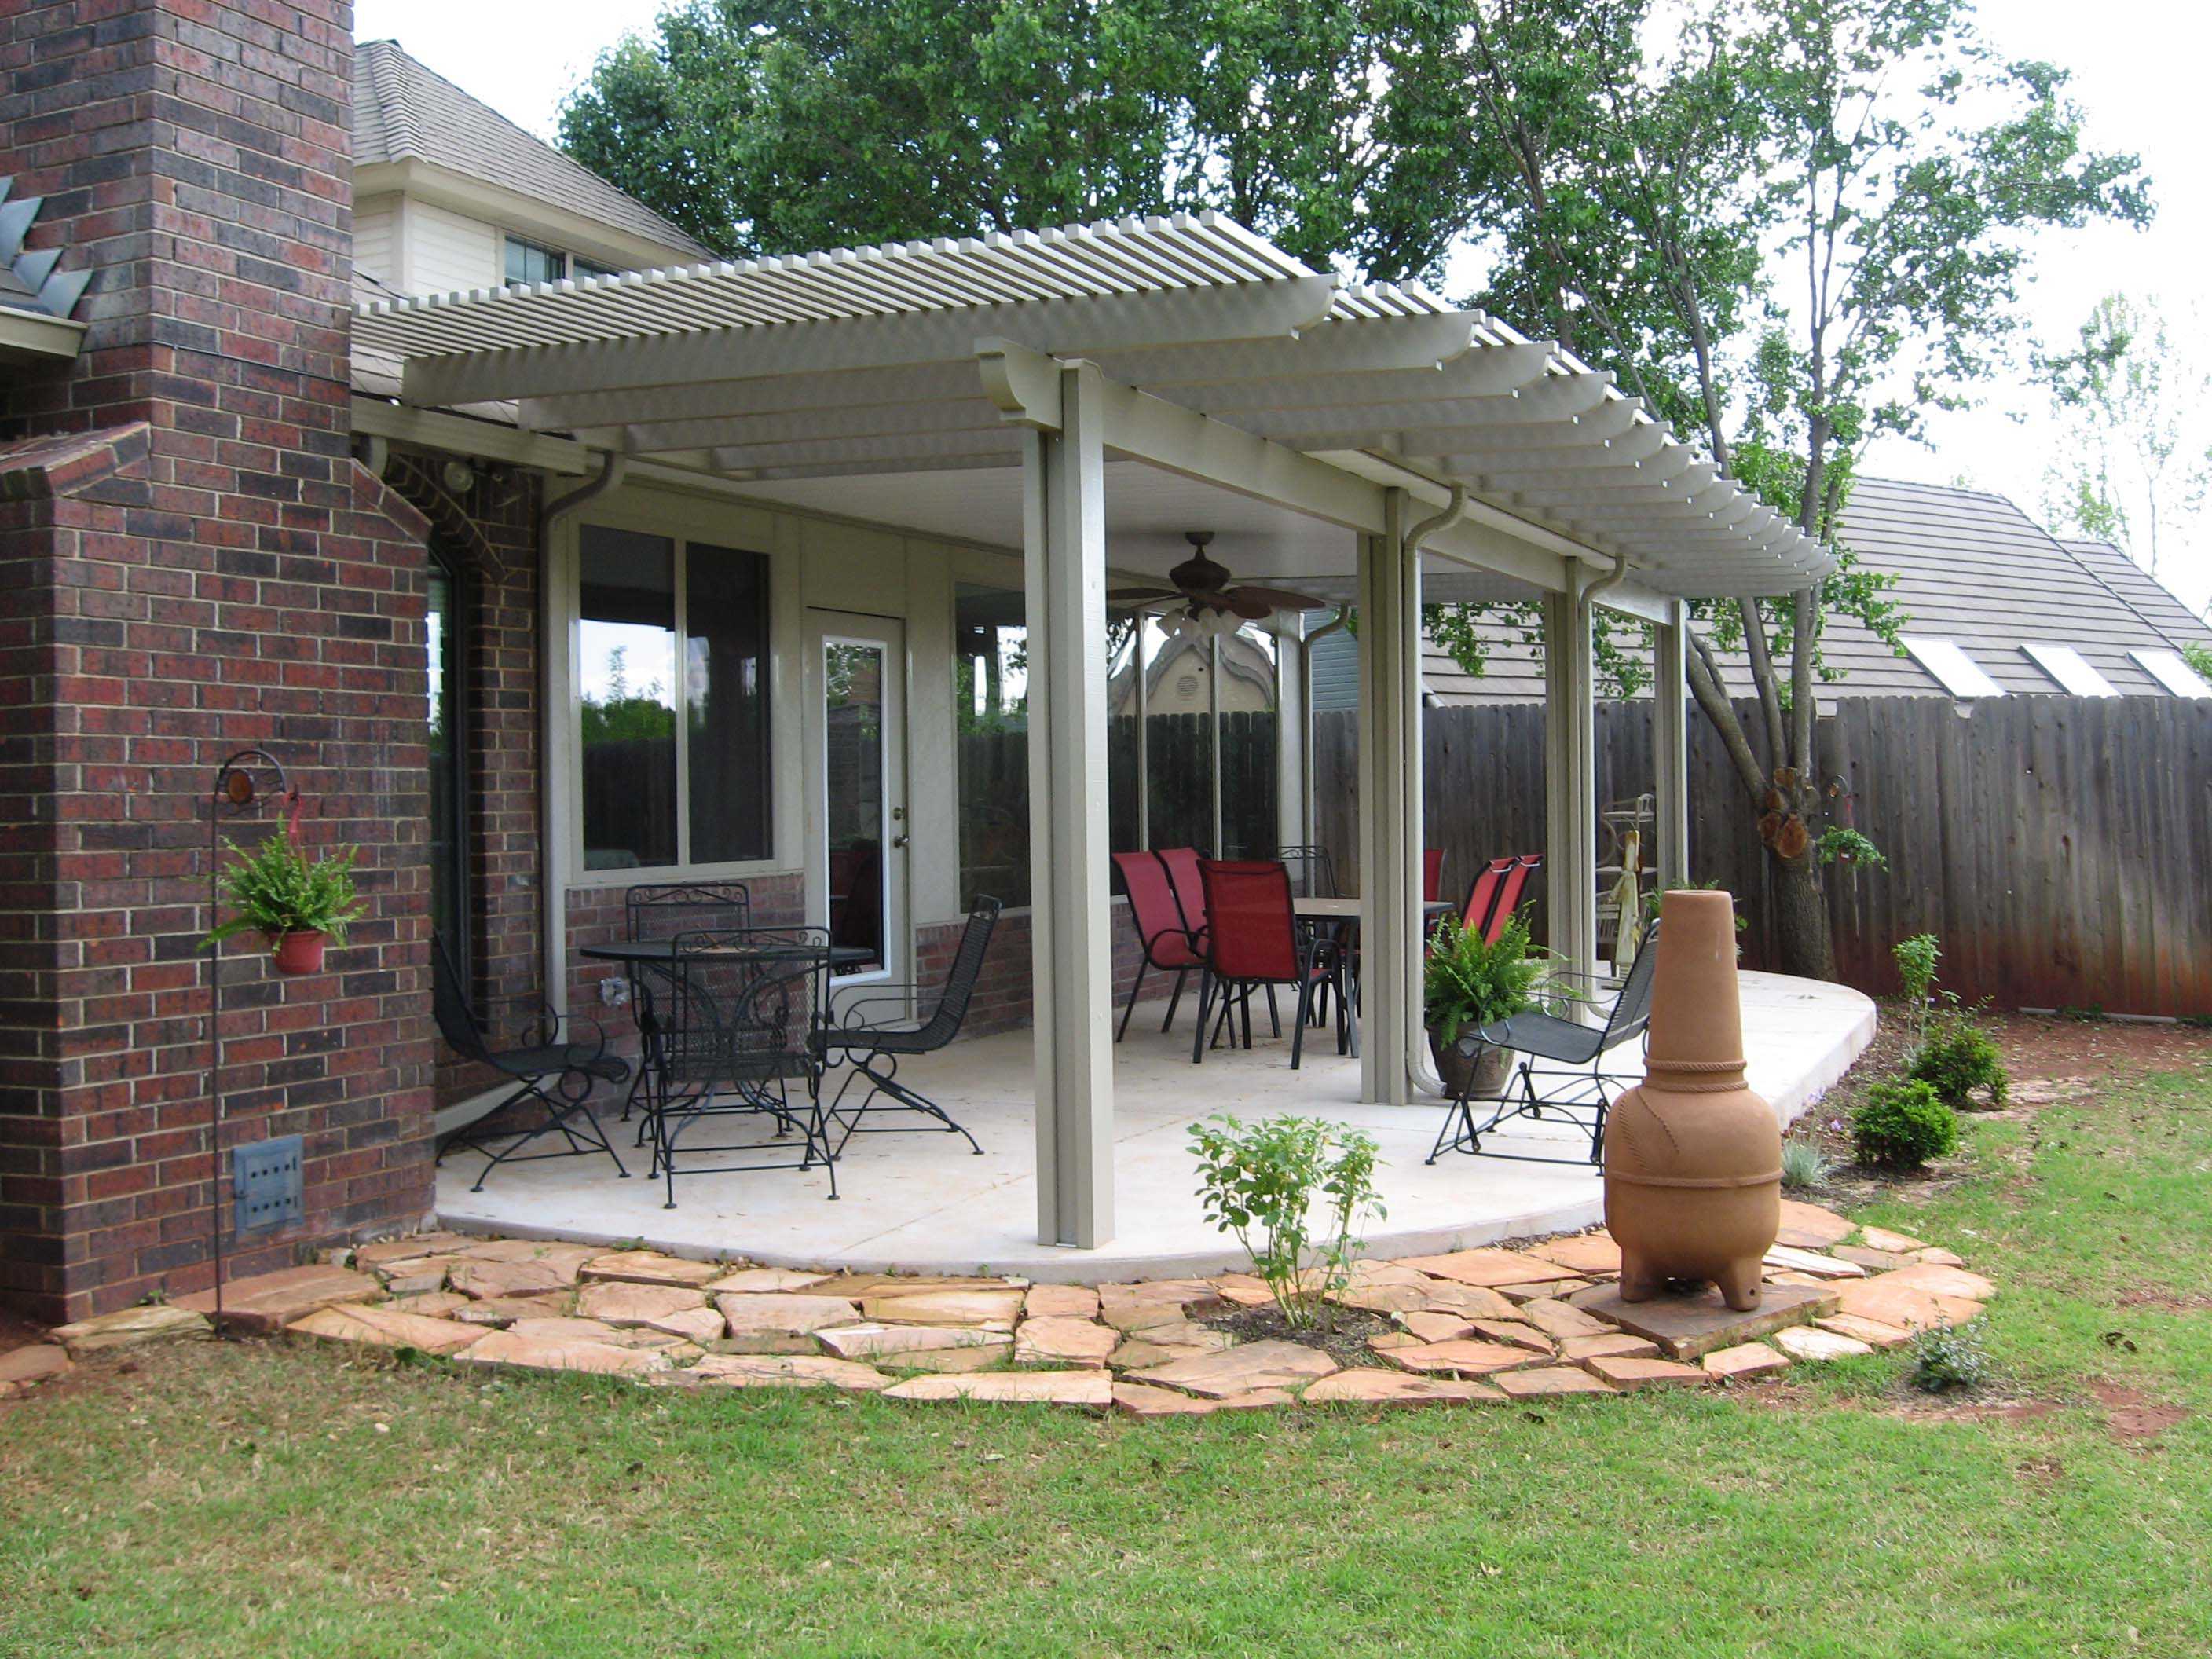 32 Best Pergola Ideas And Designs You Will Love In 2019 intended for 12 Awesome Initiatives of How to Upgrade Backyard Trellis Ideas